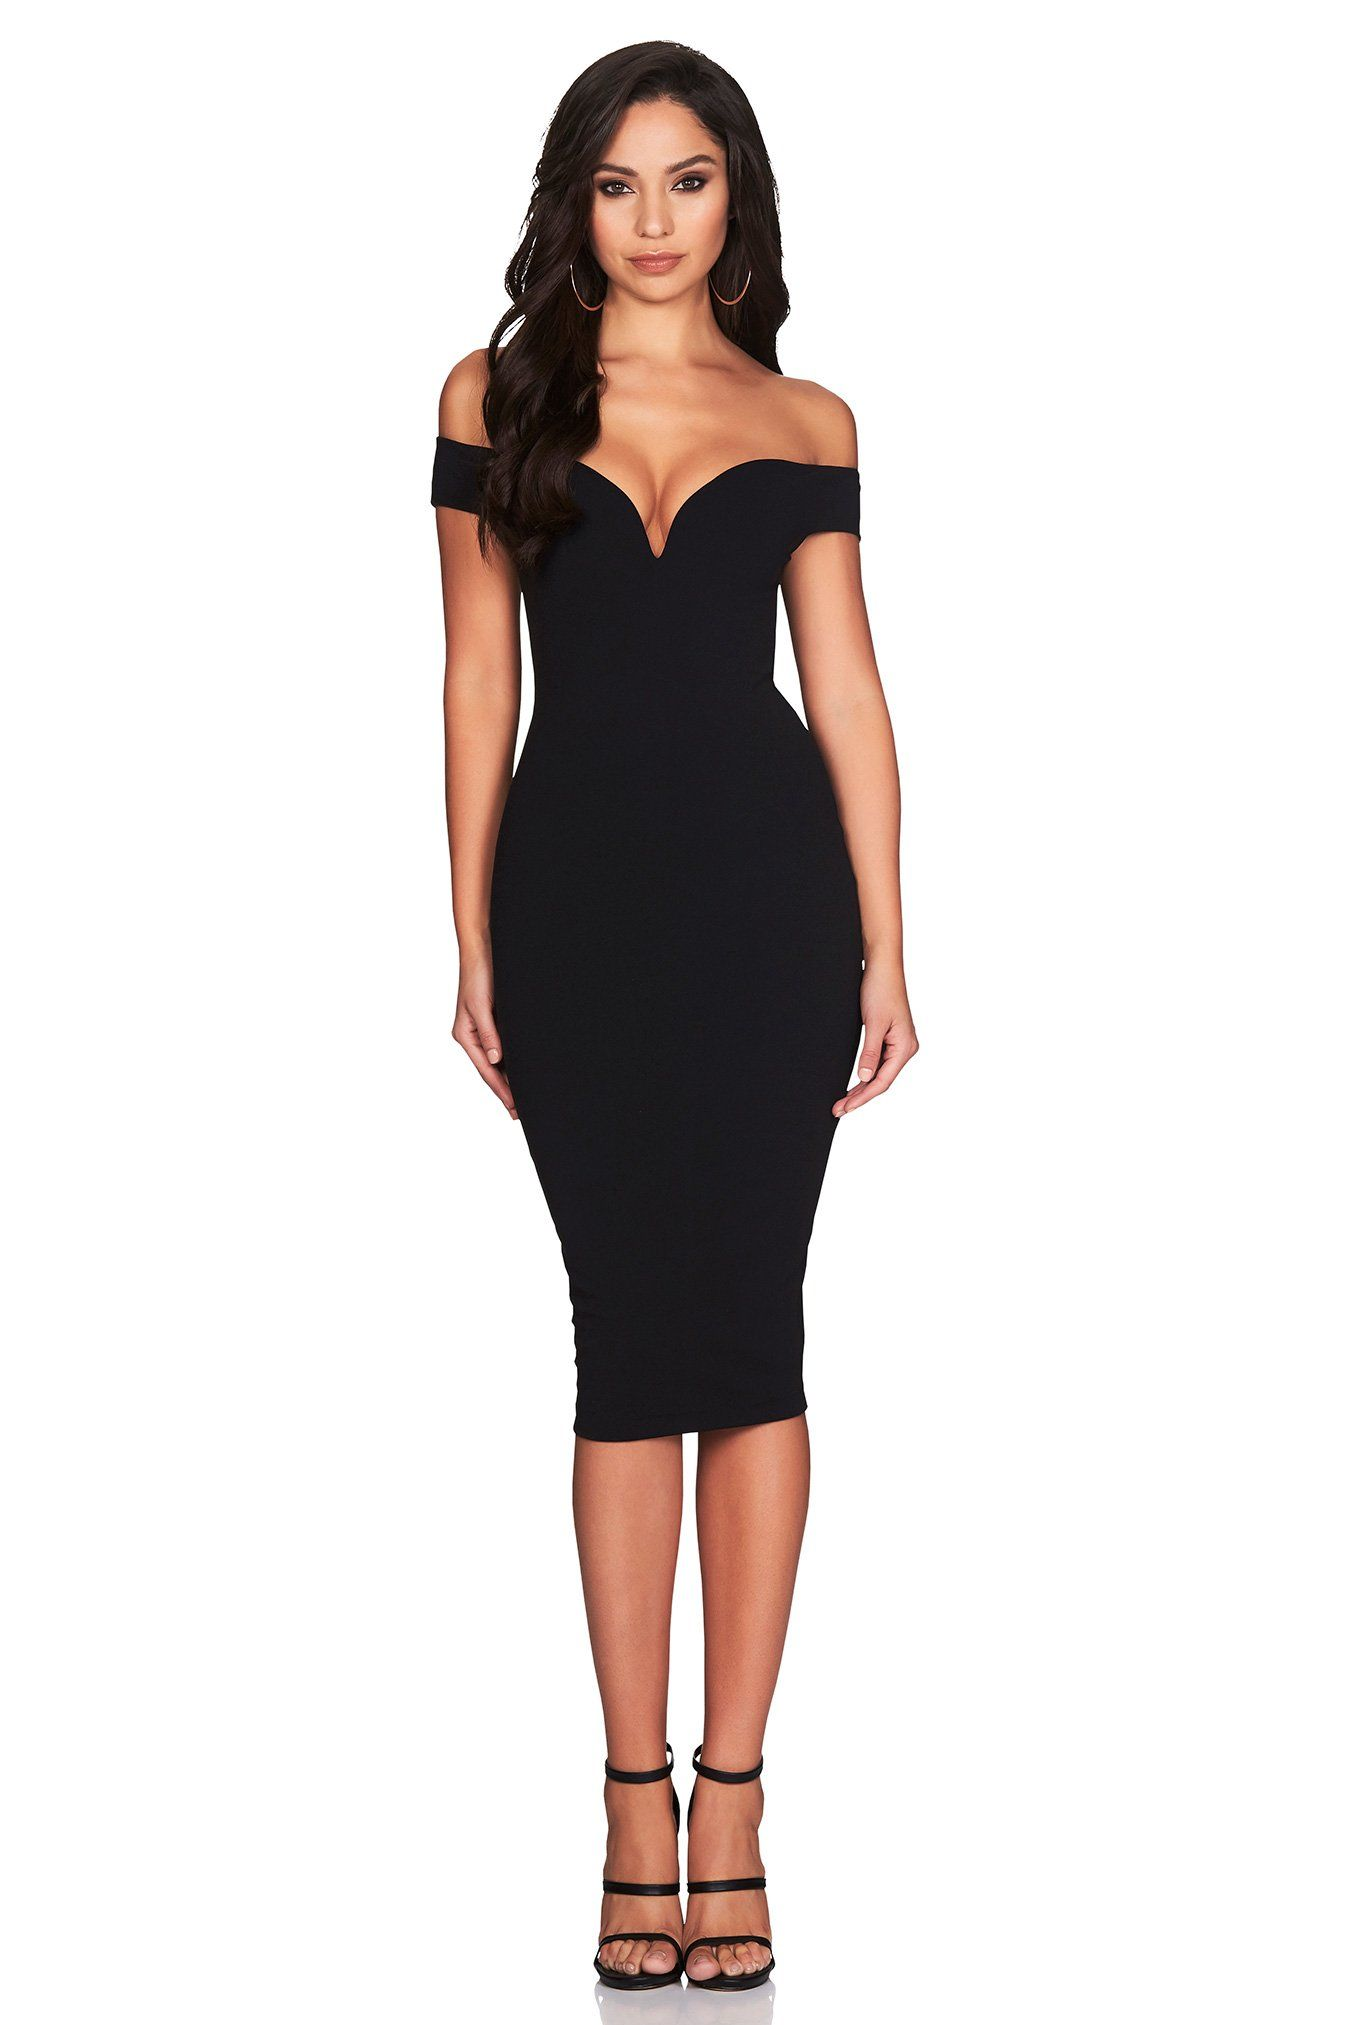 ea4ced207479 The Nookie Elena Midi Dress in Black features a off the shoulder sweetheart  neckline with an